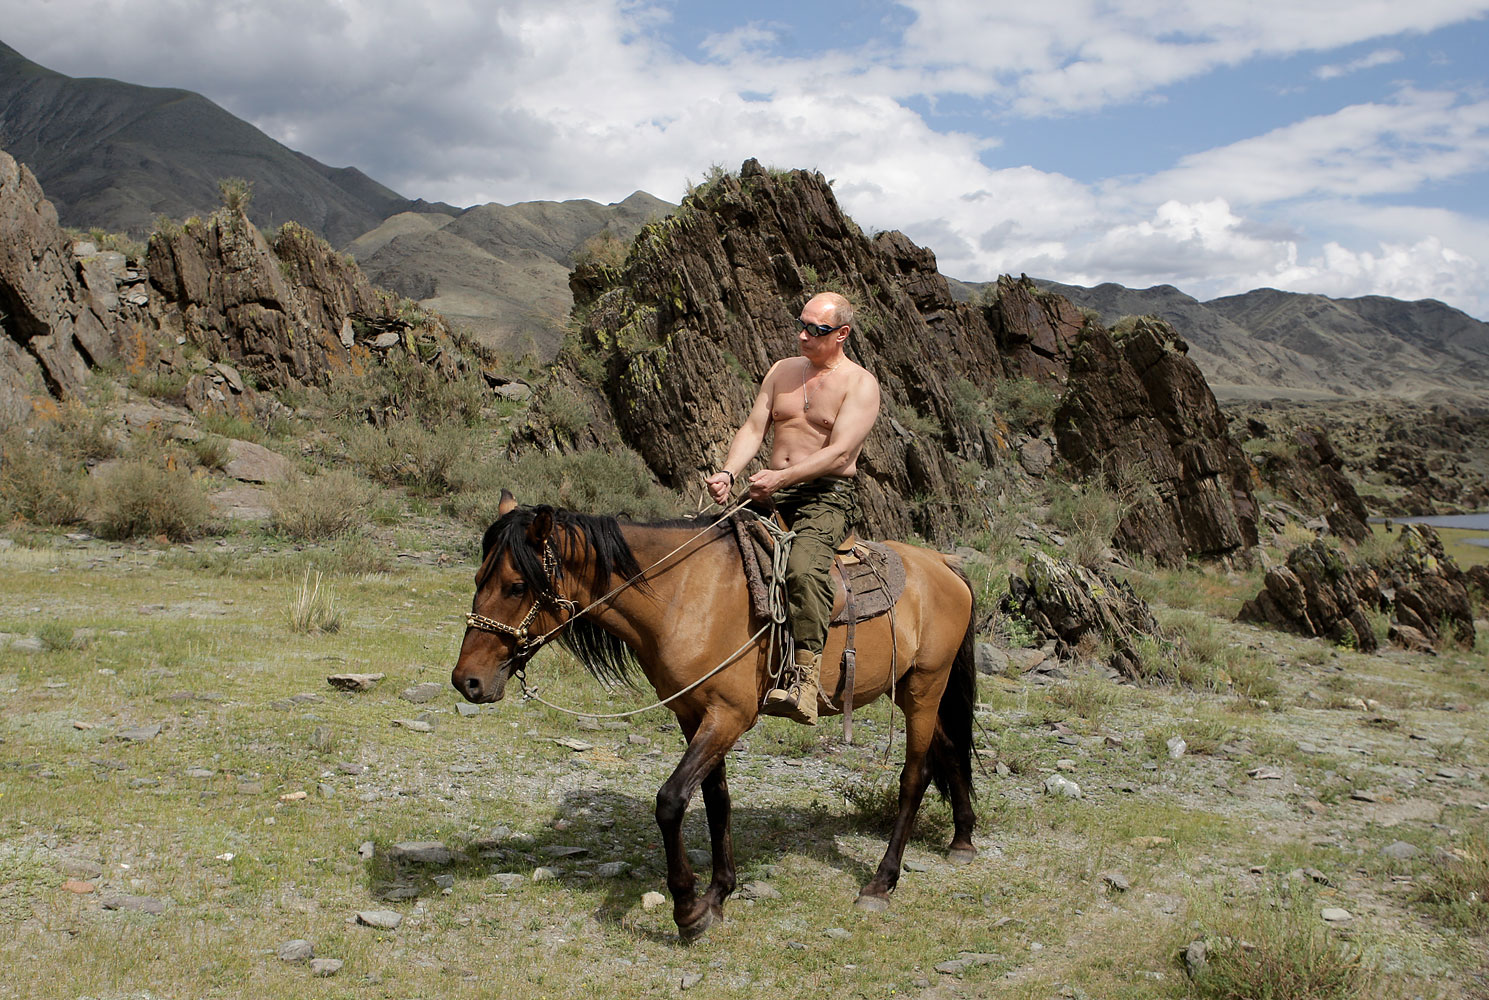 Russian commentators noted that the photographs evoked associations with the mythic heroes of Russia, like the many horsemen who once rode the Russian steppe, defending it from foreign invaders, Aug. 3, 2009.